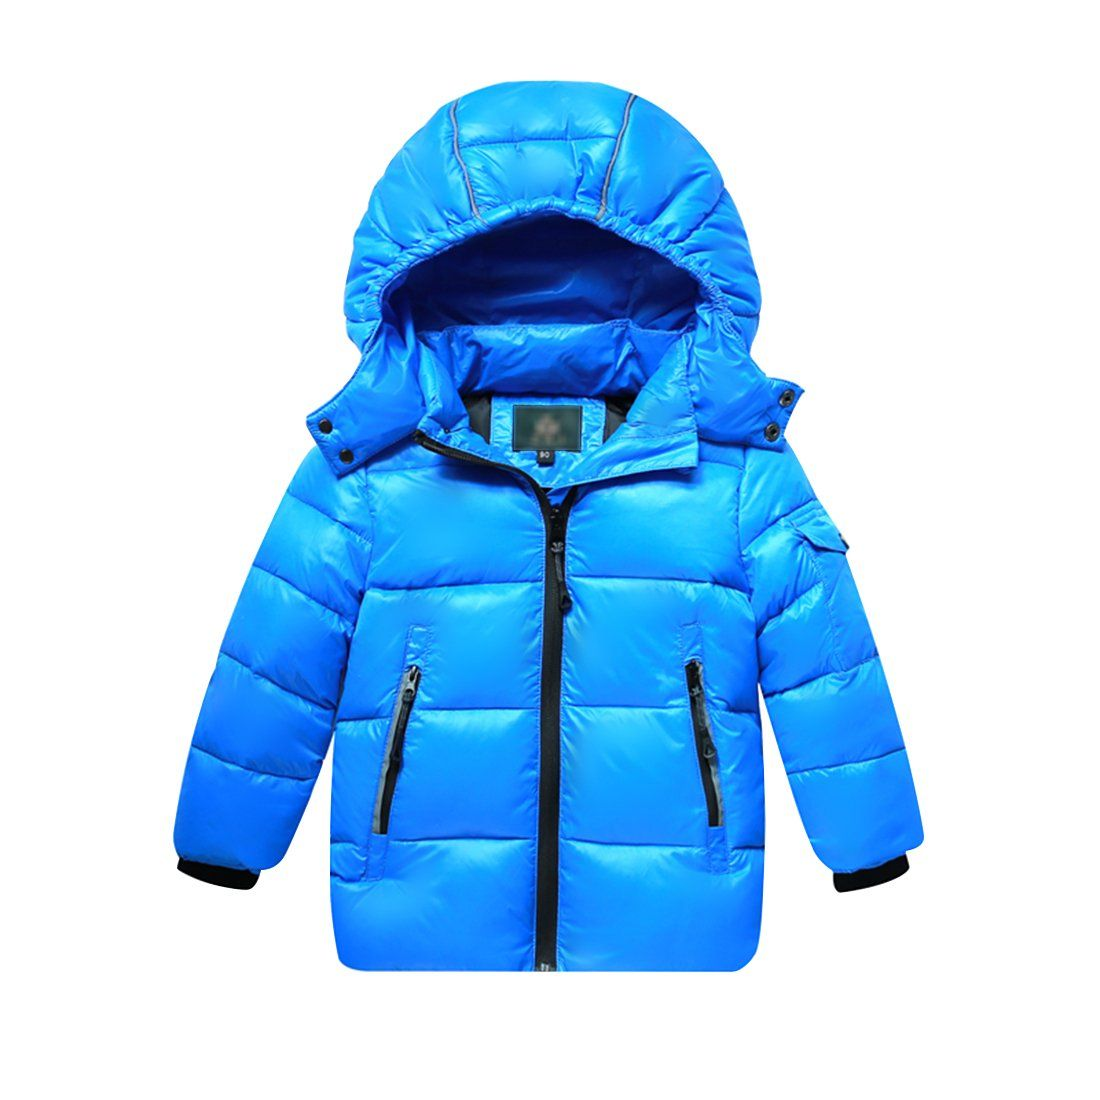 Boys Girls Puffer Jacket Winter Down Coats With Removable Hood Sky Blue 2 3t Stand Collar Removable Zip Off Ho Girls Puffer Jacket Winter Jackets Down Coat [ 1100 x 1100 Pixel ]